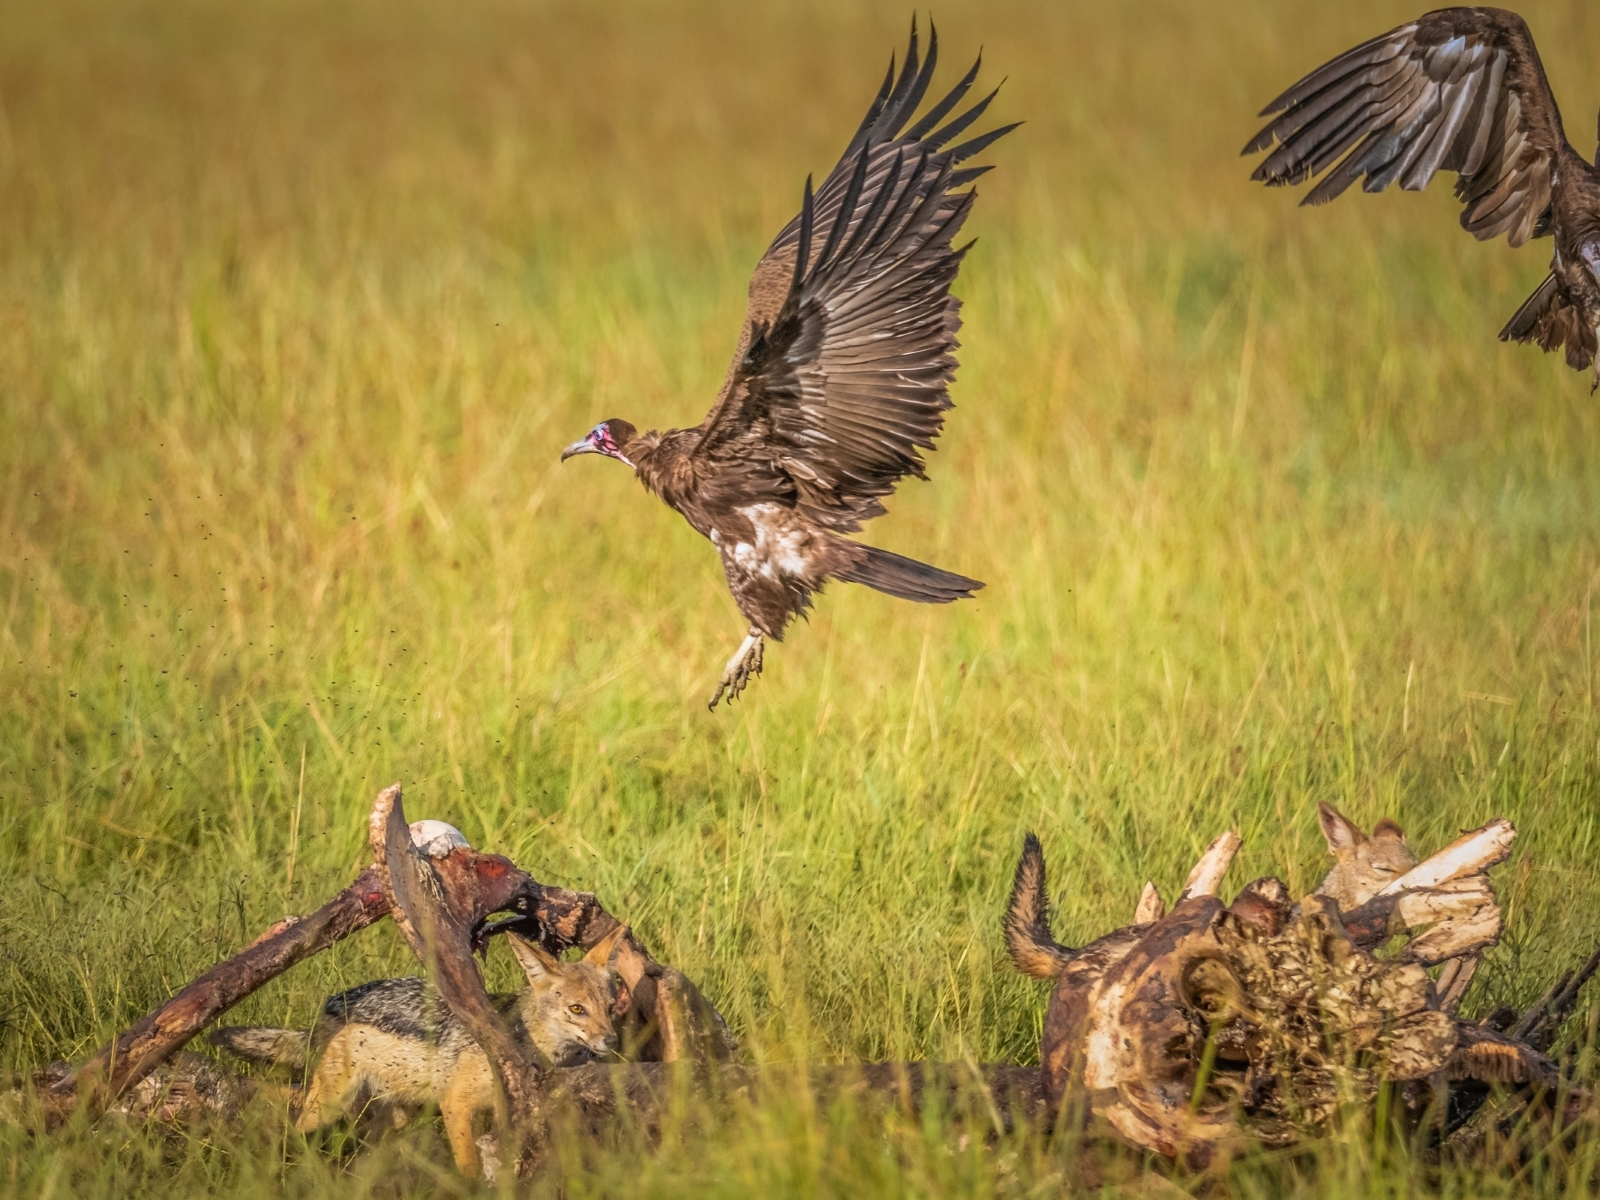 Scavengers-of-Masai-Mara-1_-Scavengers-play-an-important-role-in-the-ecosystem-by-consuming-the-dead-animals.-NM-Best-in-Show-by-Rajani-Ramanathan-LV